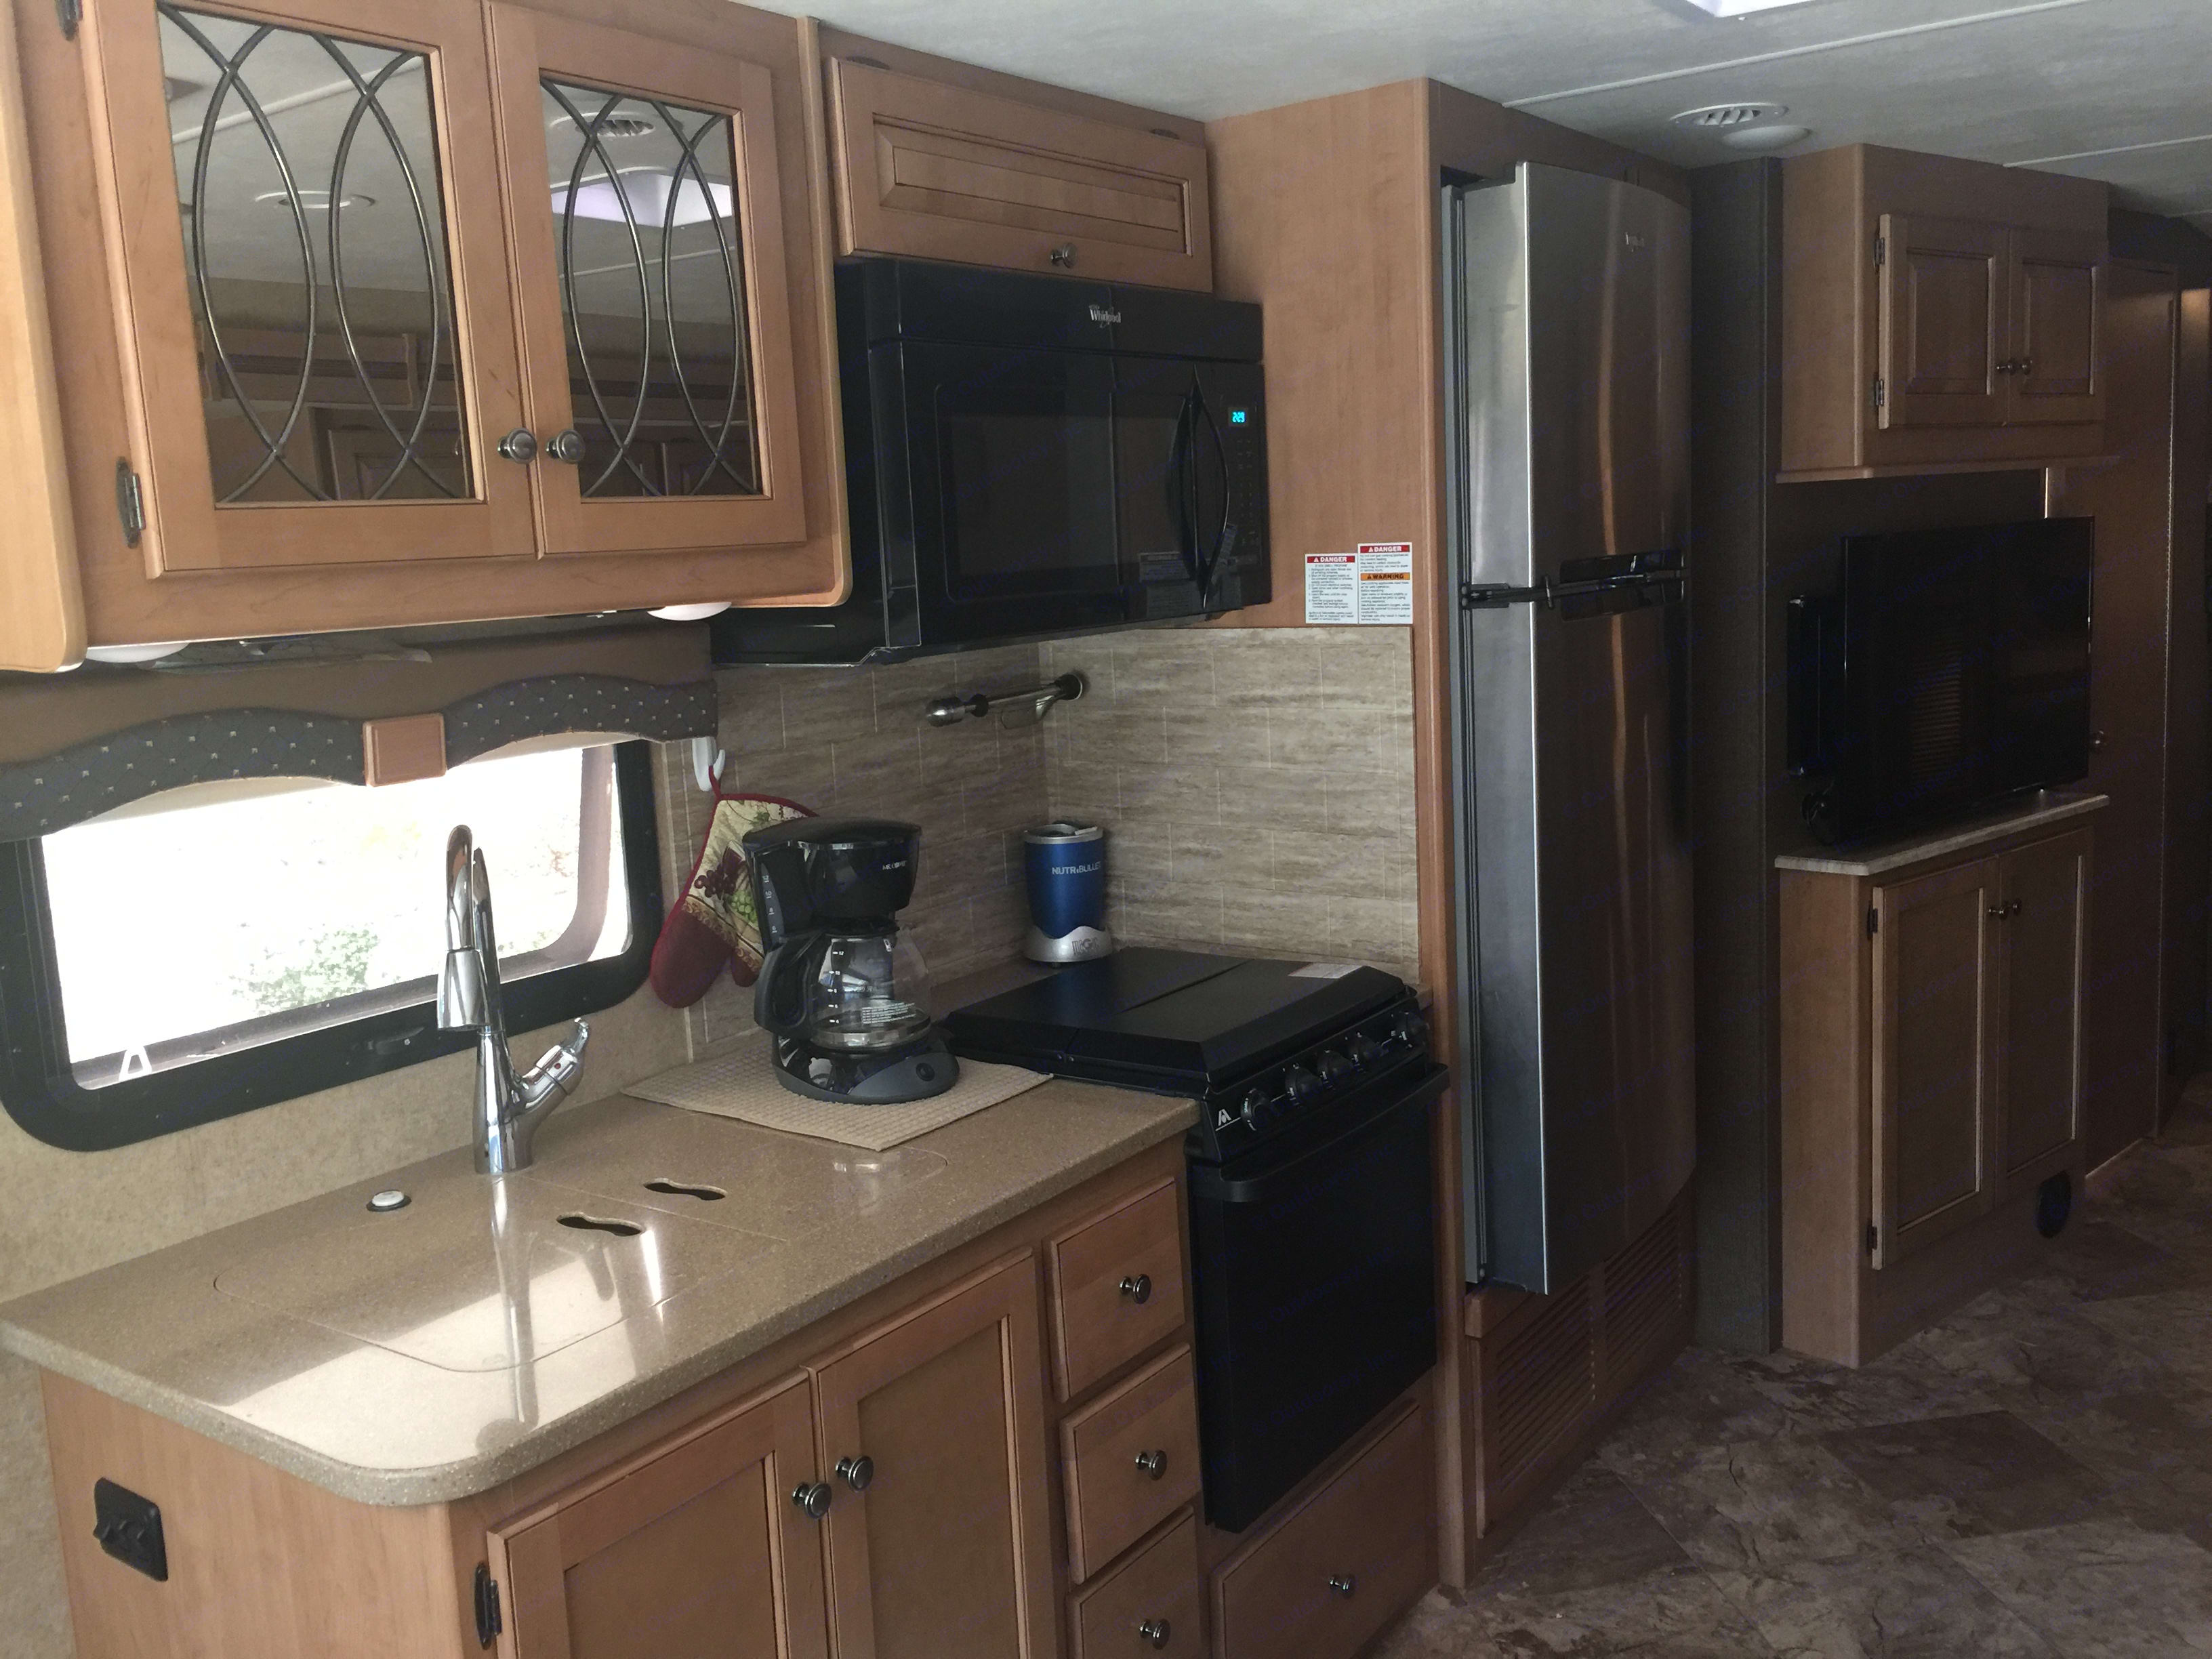 stainless refrigerator, Gas stove/oven. Thor Motor Coach Windsport 2016